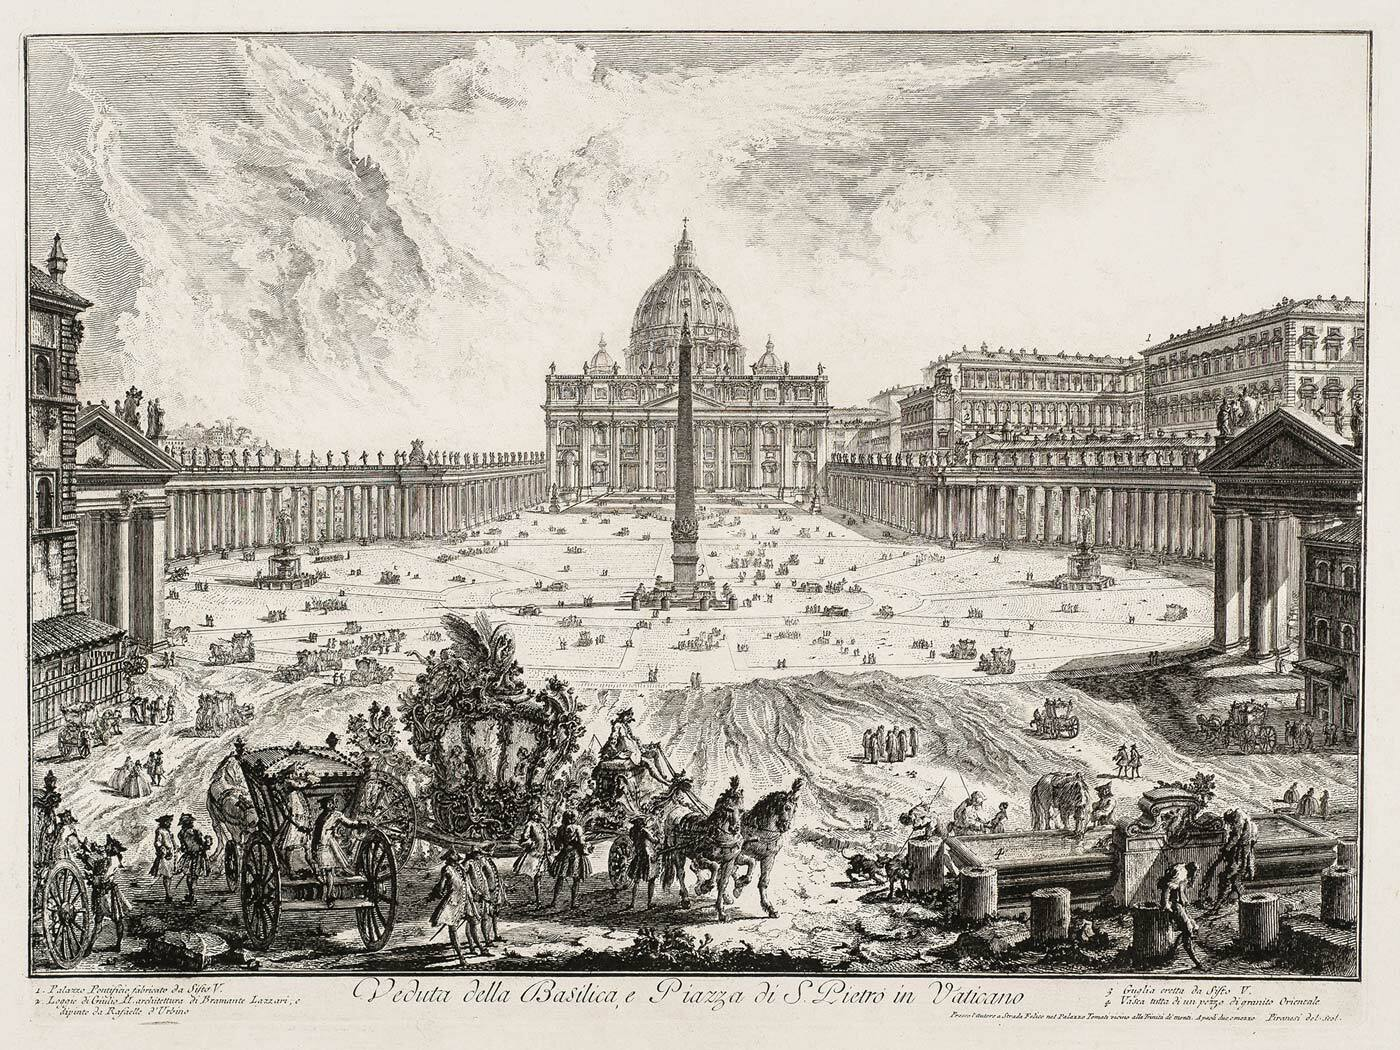 St. Peter's Square in Rome, Vedute di Roma by Piranesi (collection KABK Library)